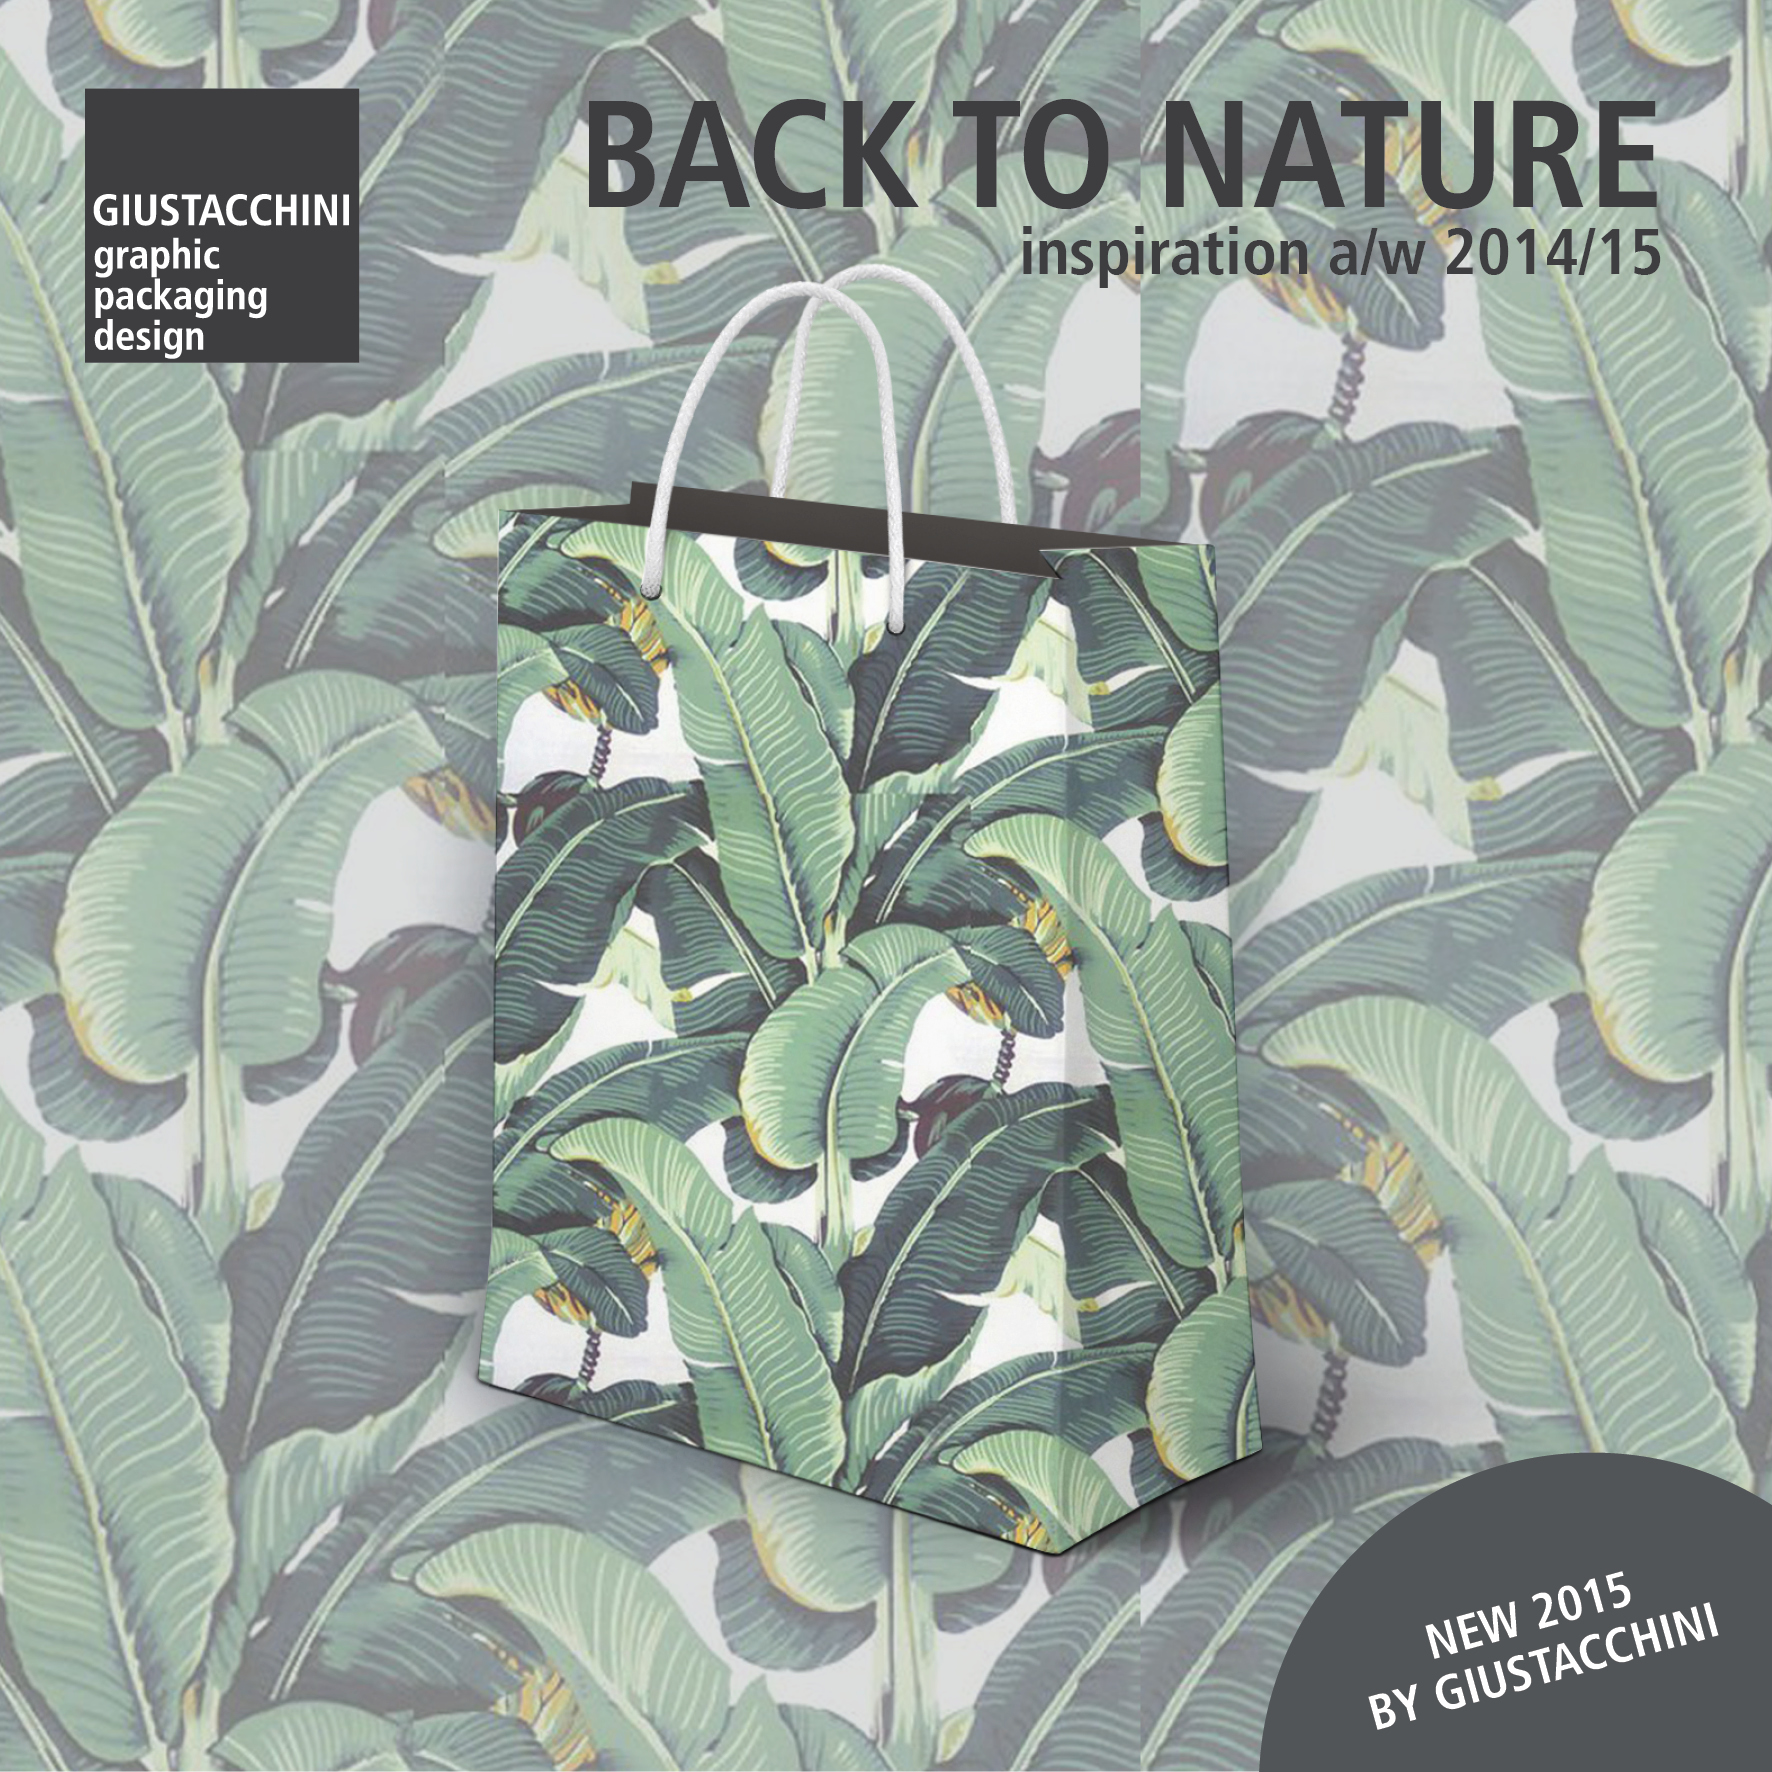 BACK TO NATURE - A/W 2014/15